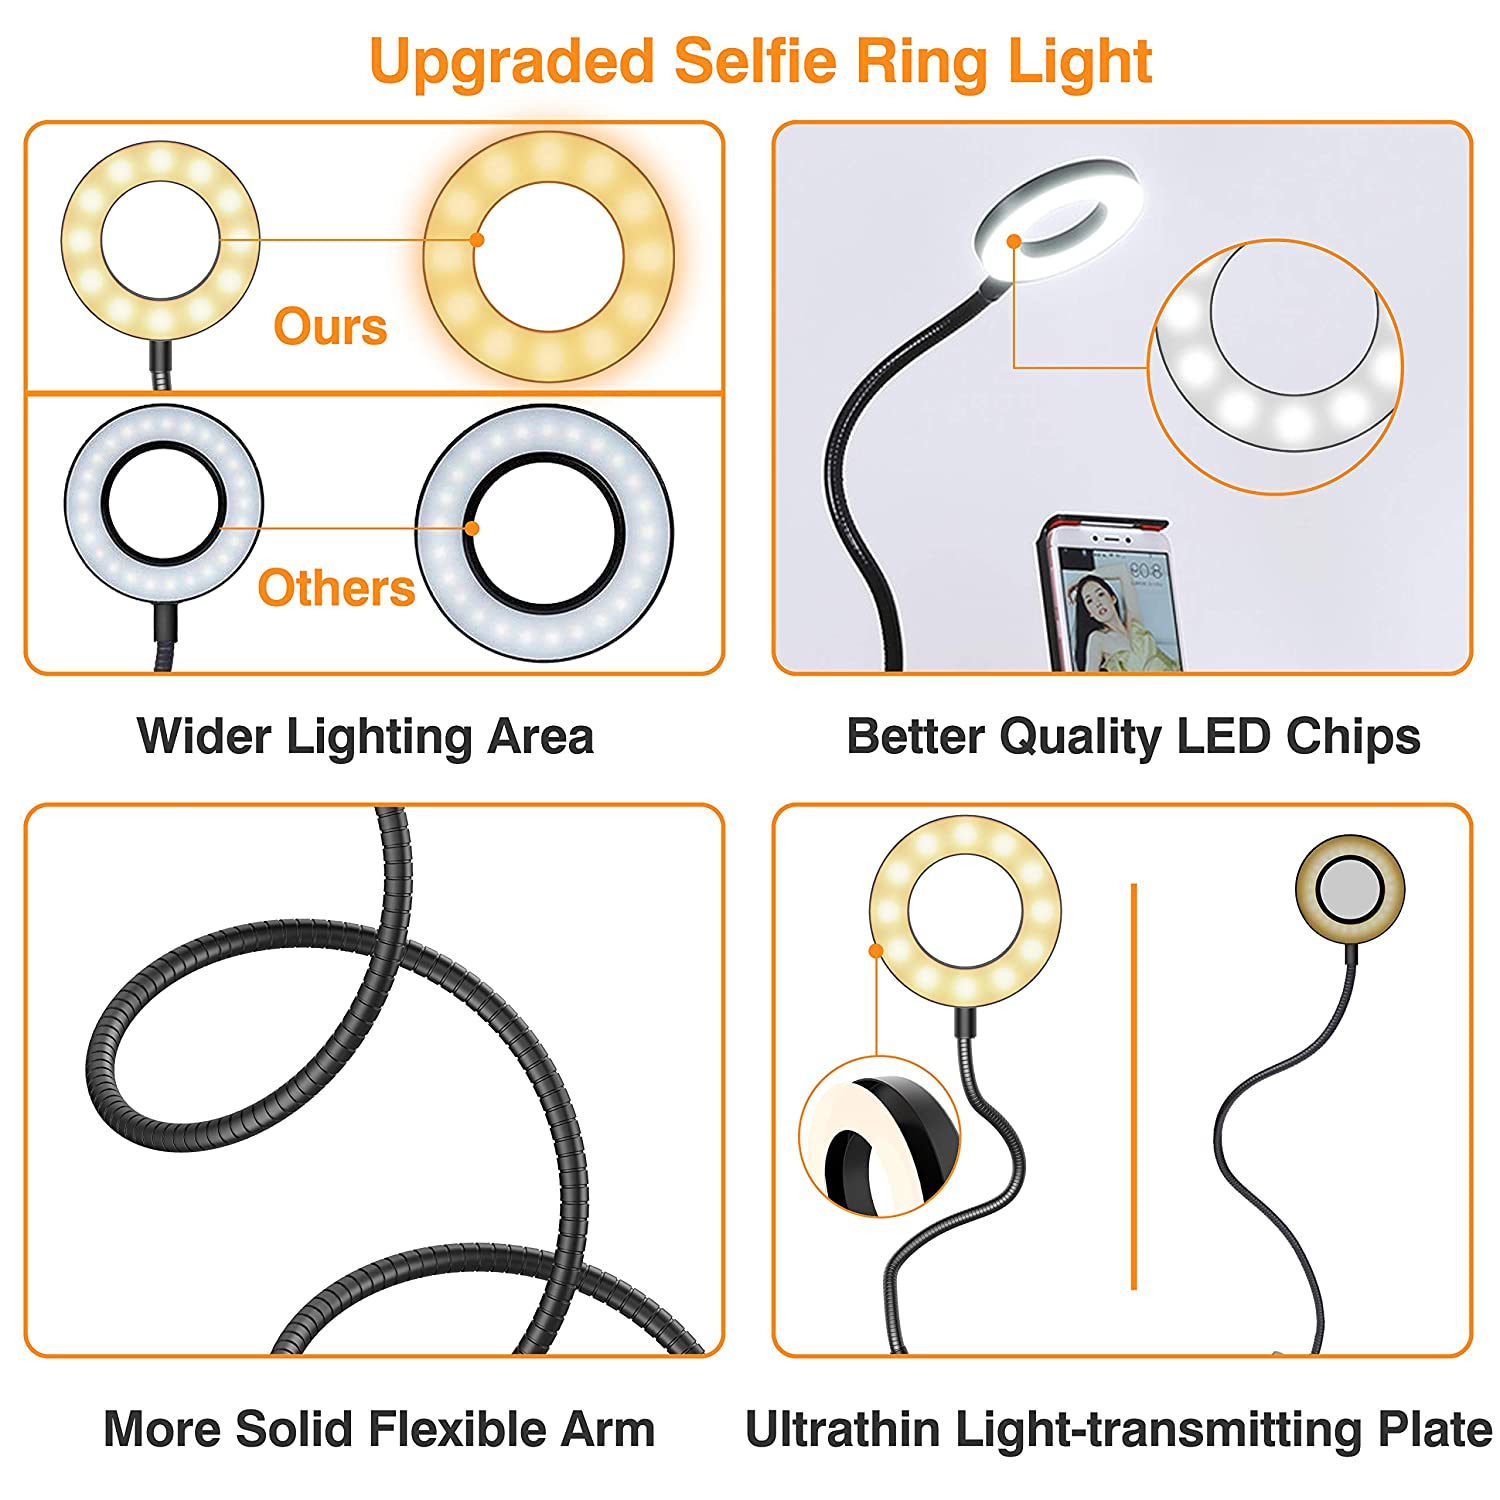 Selfie Ring Light Upgraded Ring Light with Remote Shutter and Cell Phone Holder Stand for Live Stream//Makeup LED Camera Light 3 Light Modes 10-Level Brightness 360/° Rotating for iPhone and Android